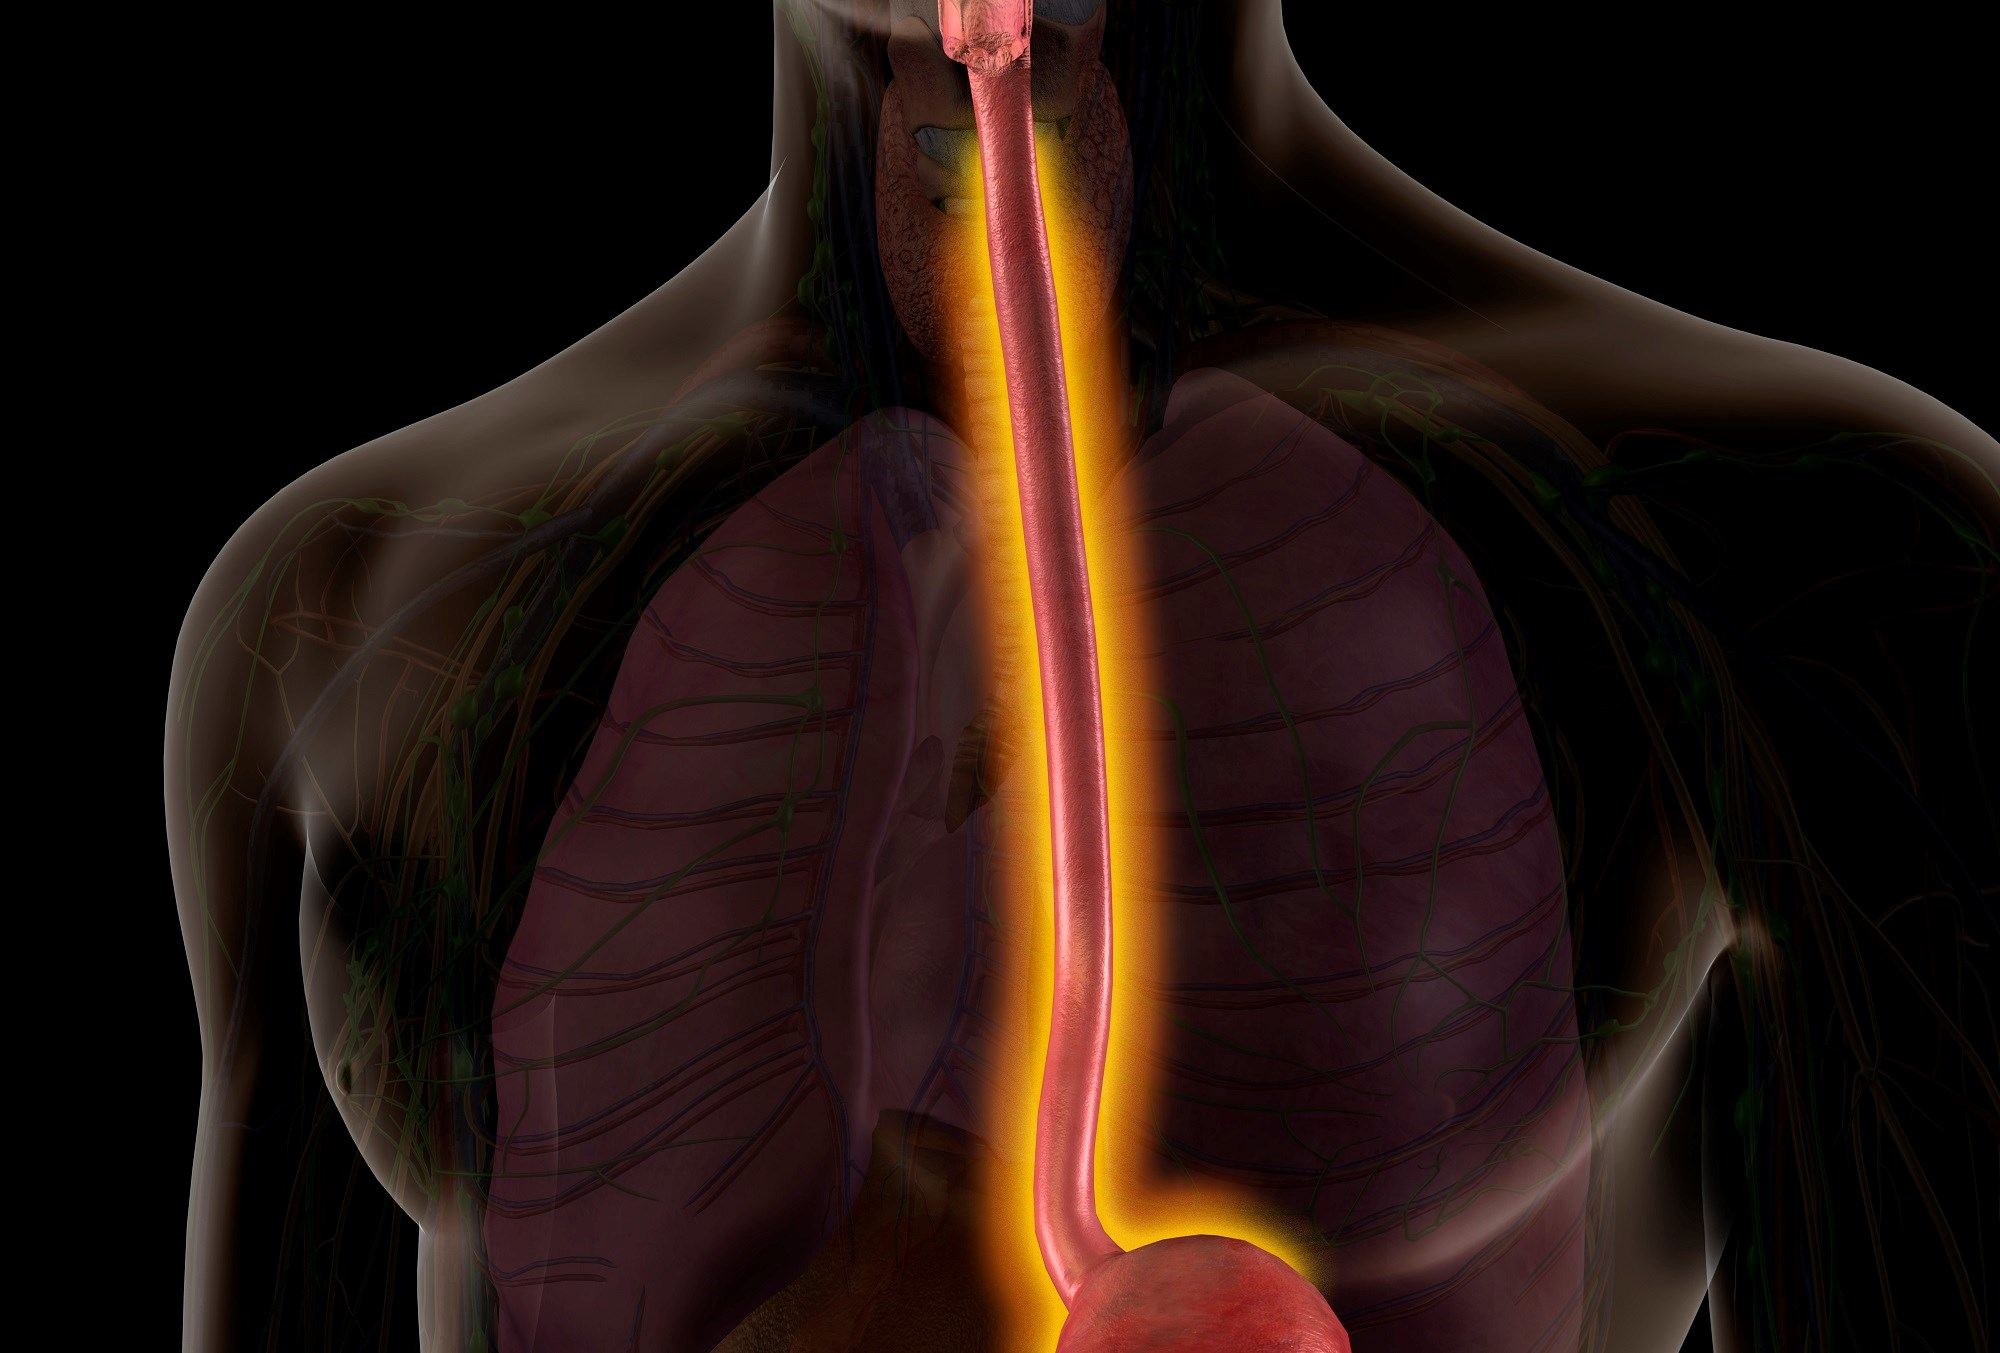 Incidence of intraoperative, postoperative complications lower in resectable esophageal cancer.